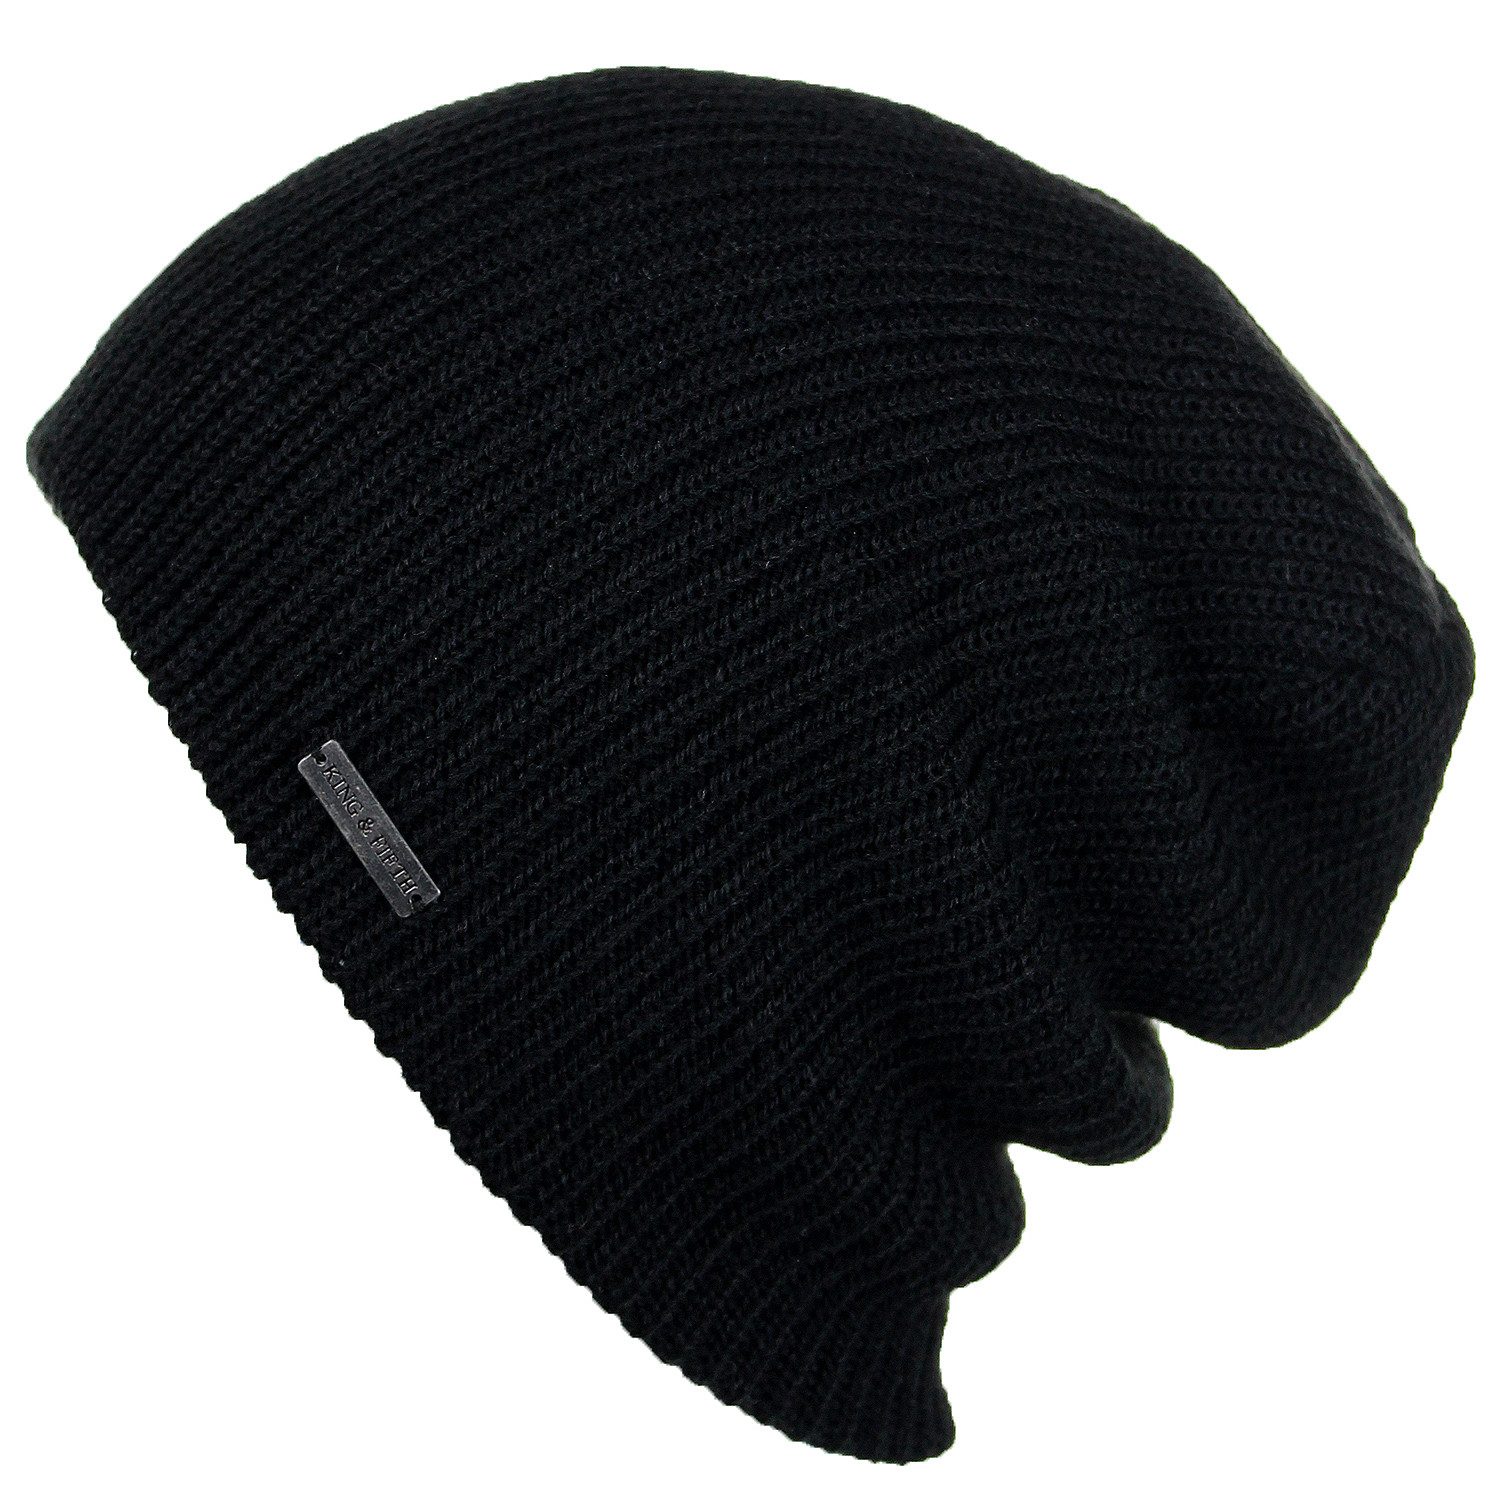 mens beanies mens slouchy beanie - the forte ZPYYNGW